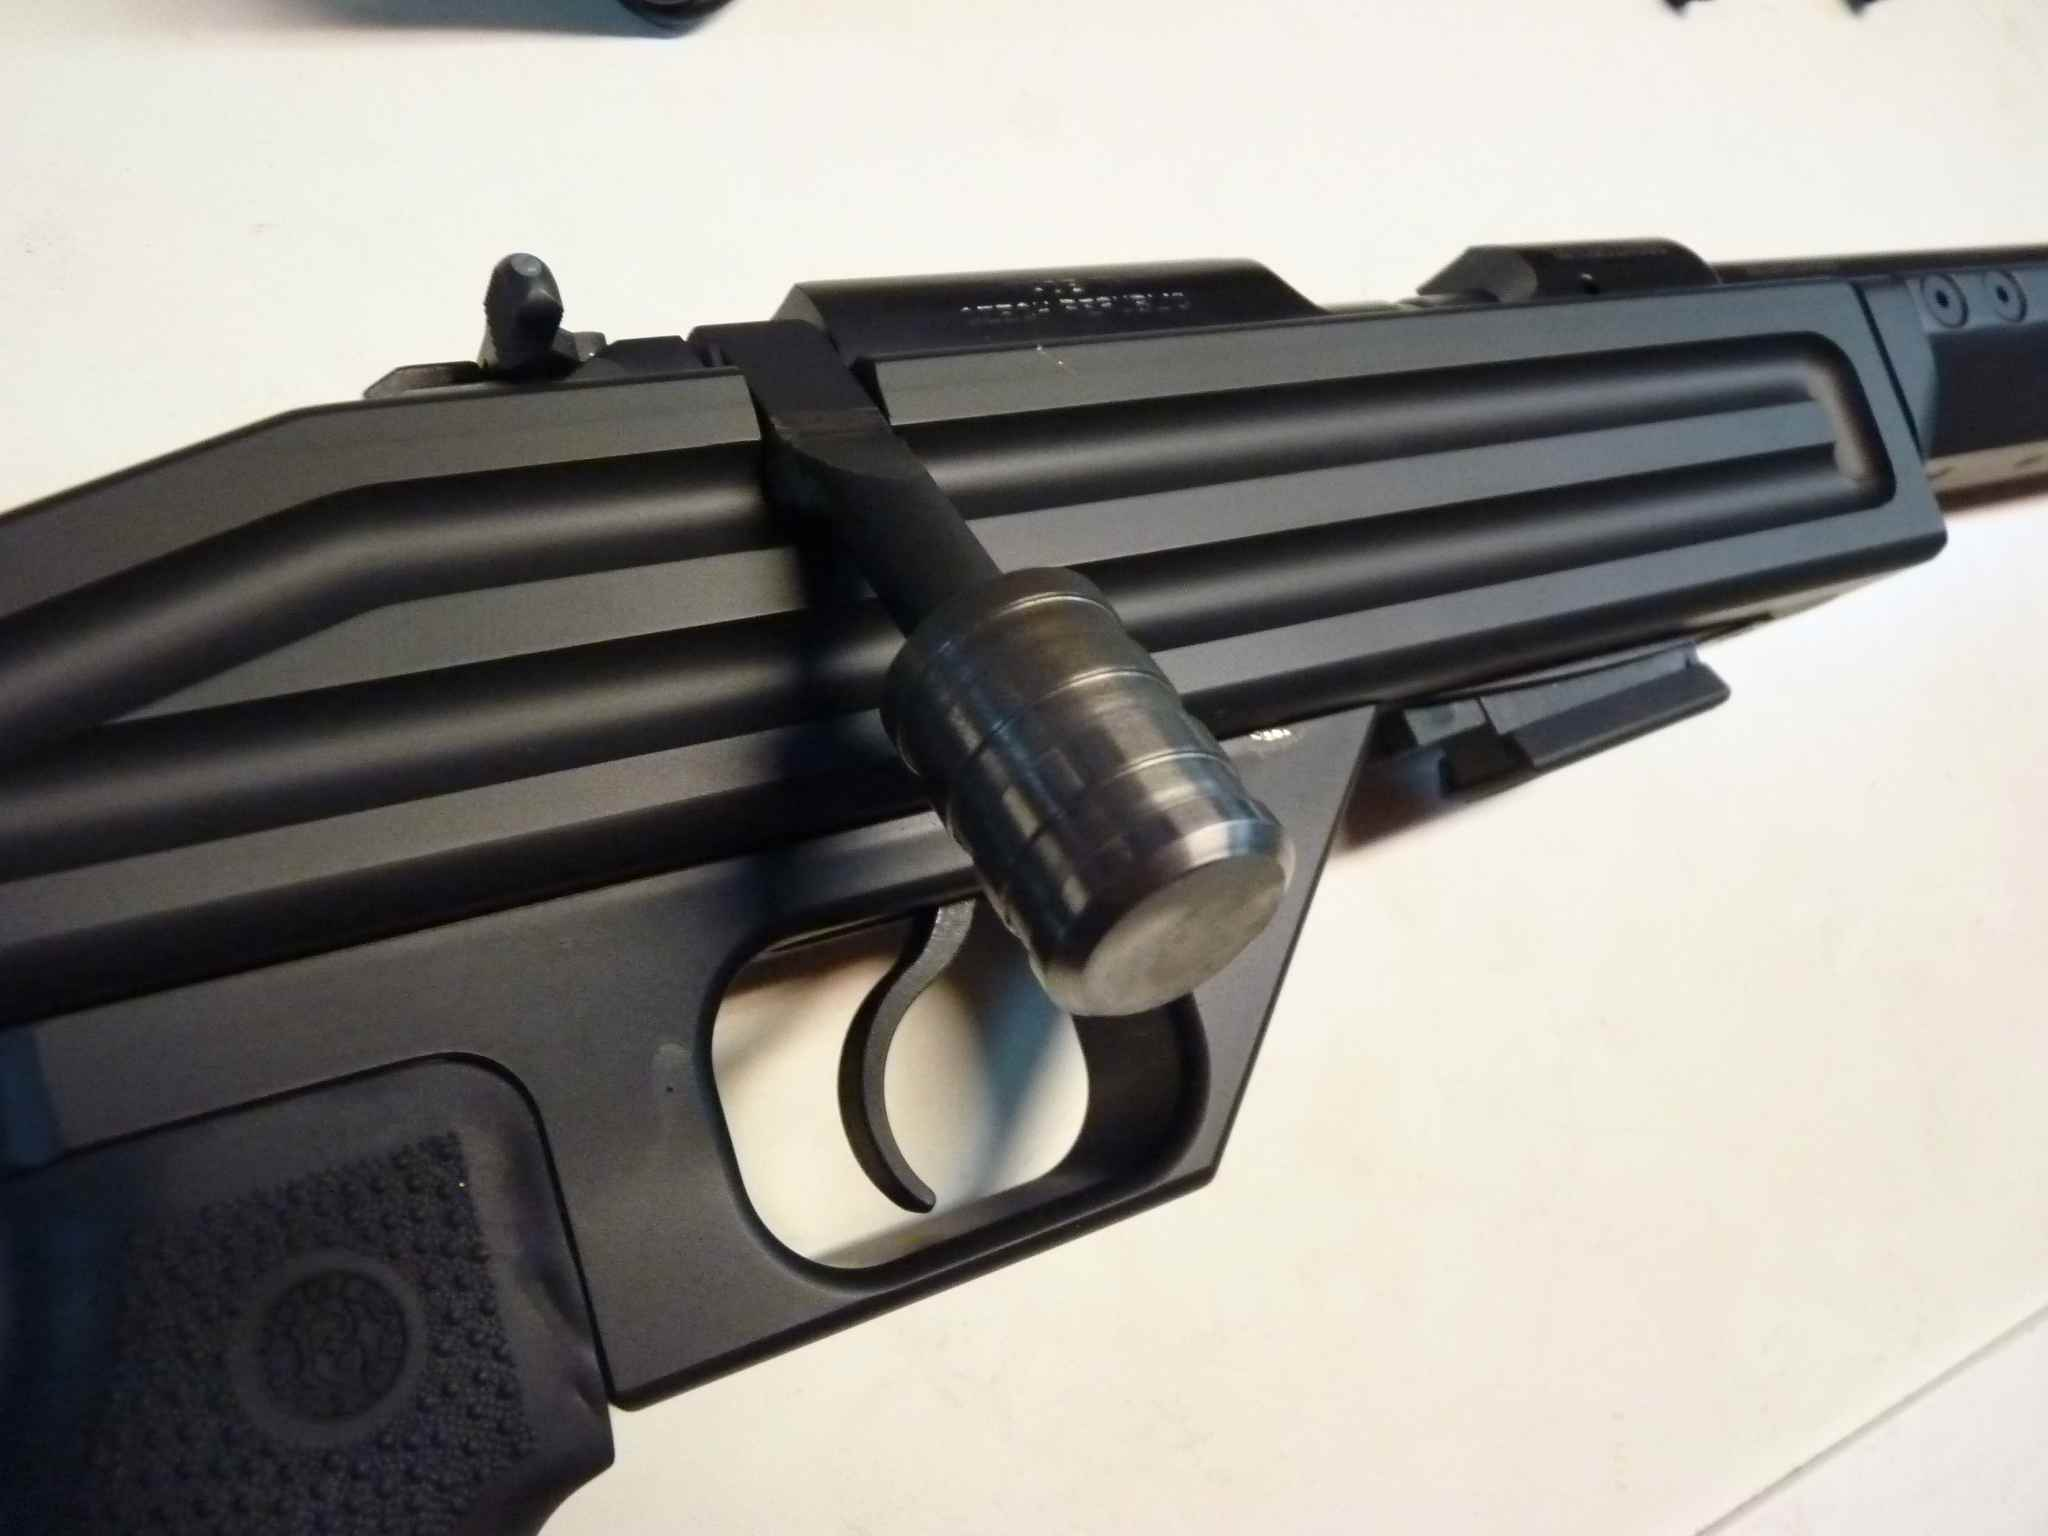 CROSSE-STOCK-CZ-455-SDS-12.jpg